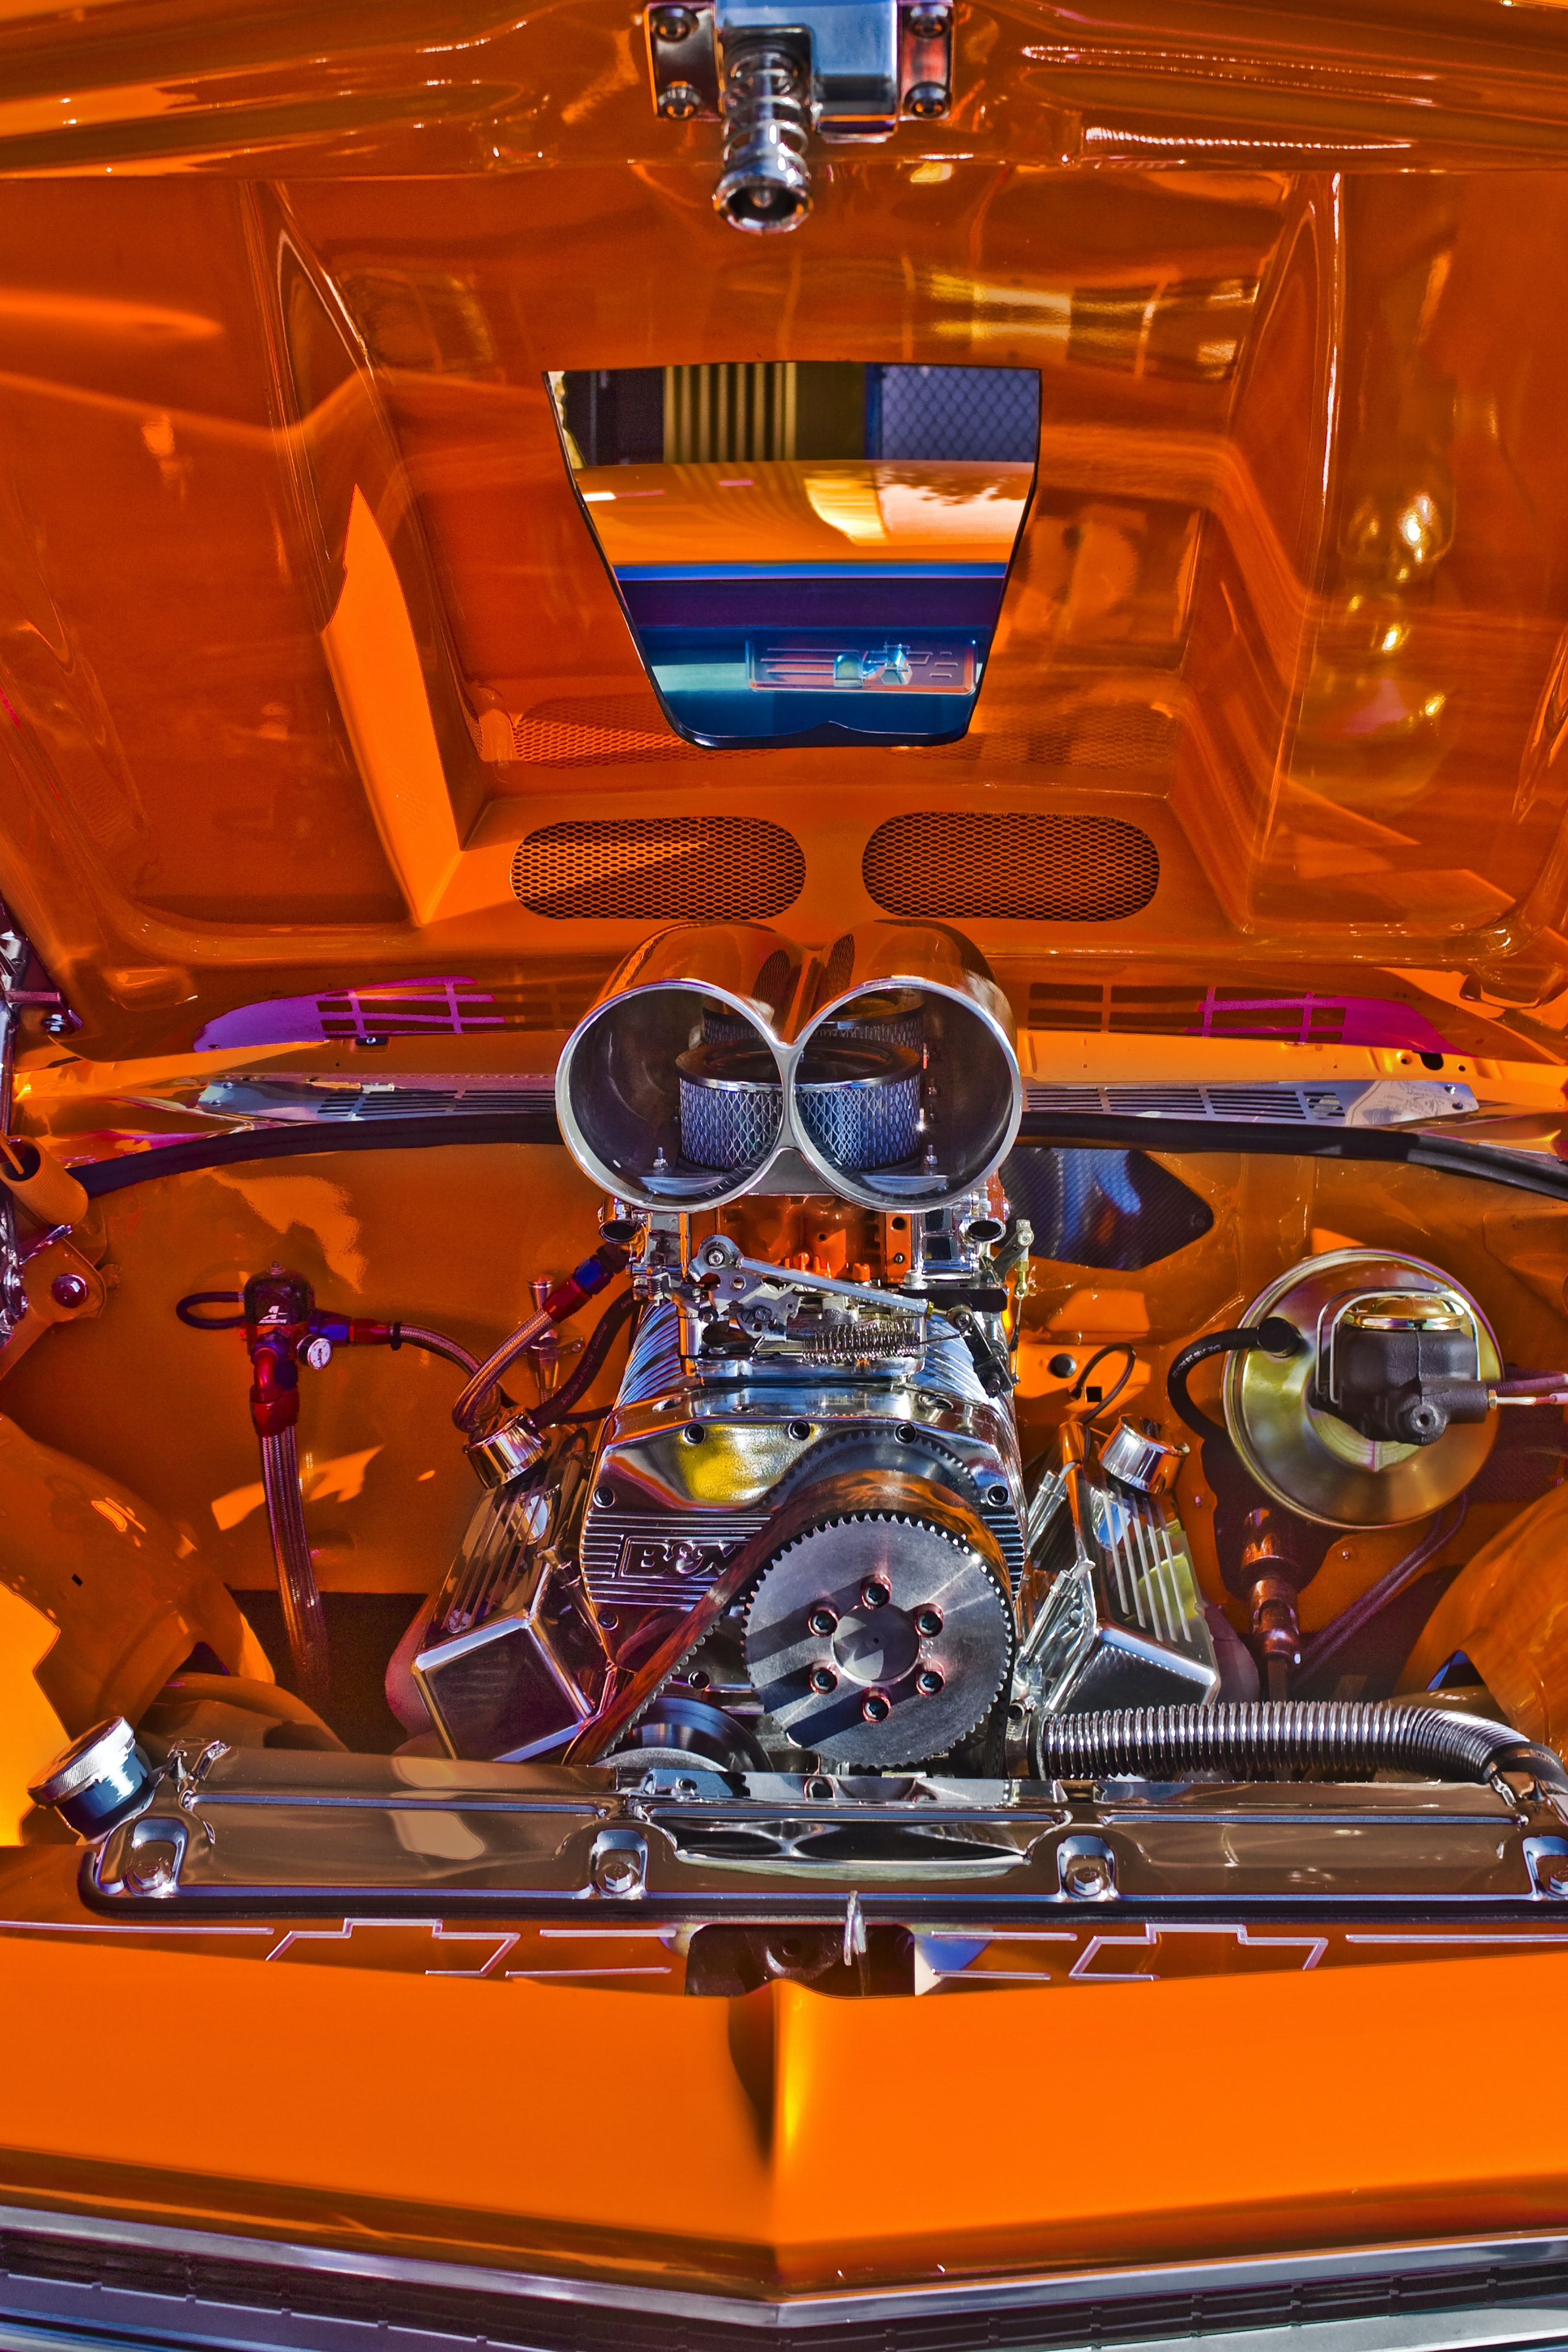 chrome engine bay in orange car